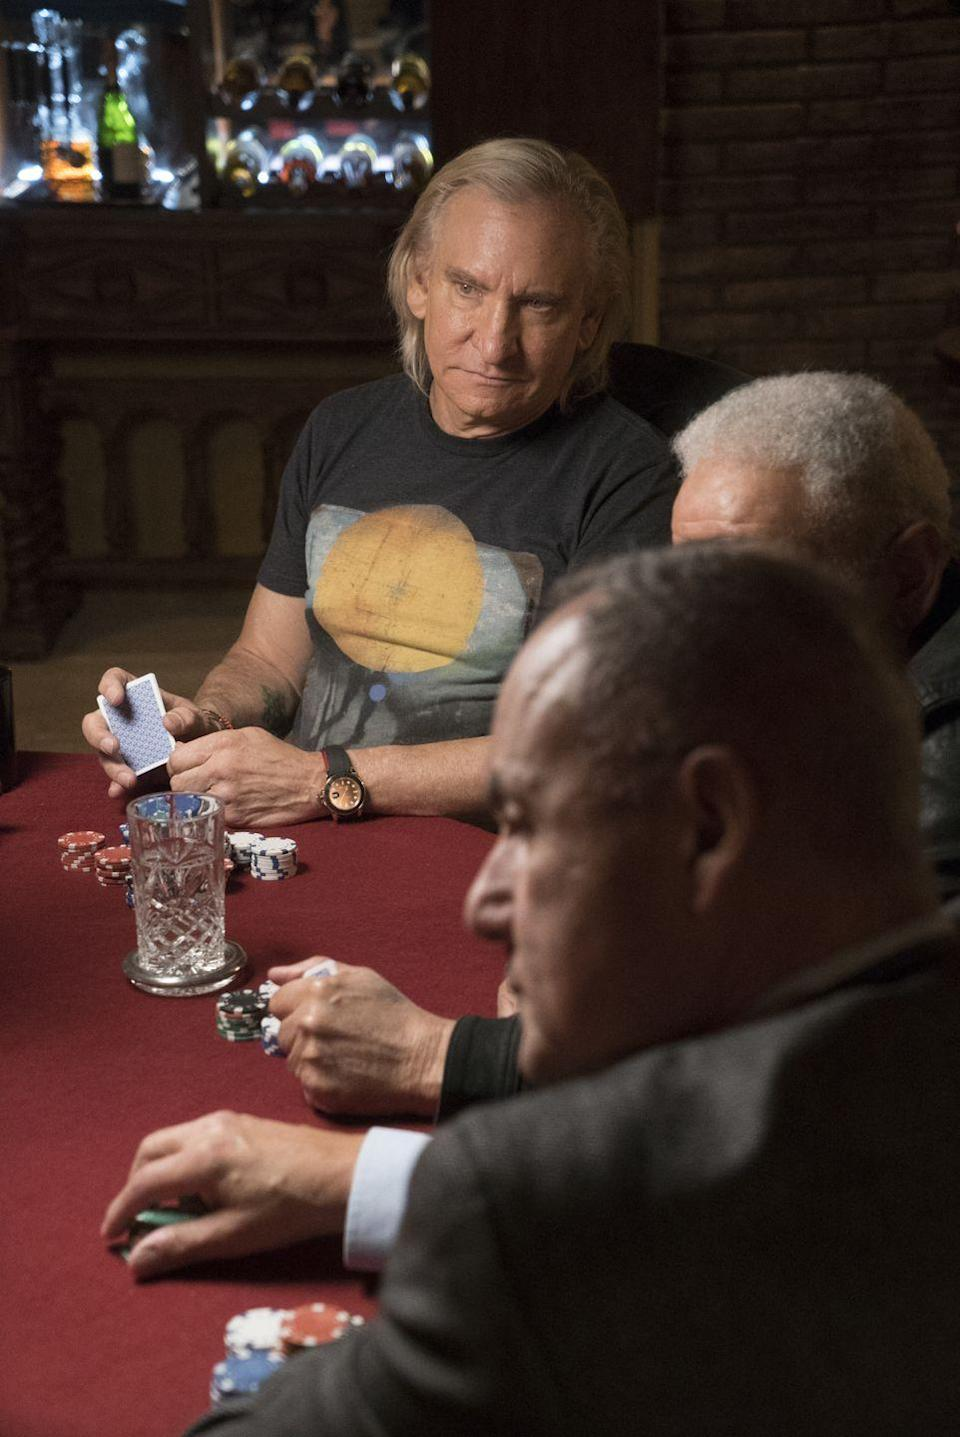 <p>Also at that poker game? Joe Walsh, guitarist and singer of <em>The Eagles</em>, was also holding down a seat at the table. Again, to be part of whatever magic brought this particular group of people together for a few hands. </p>